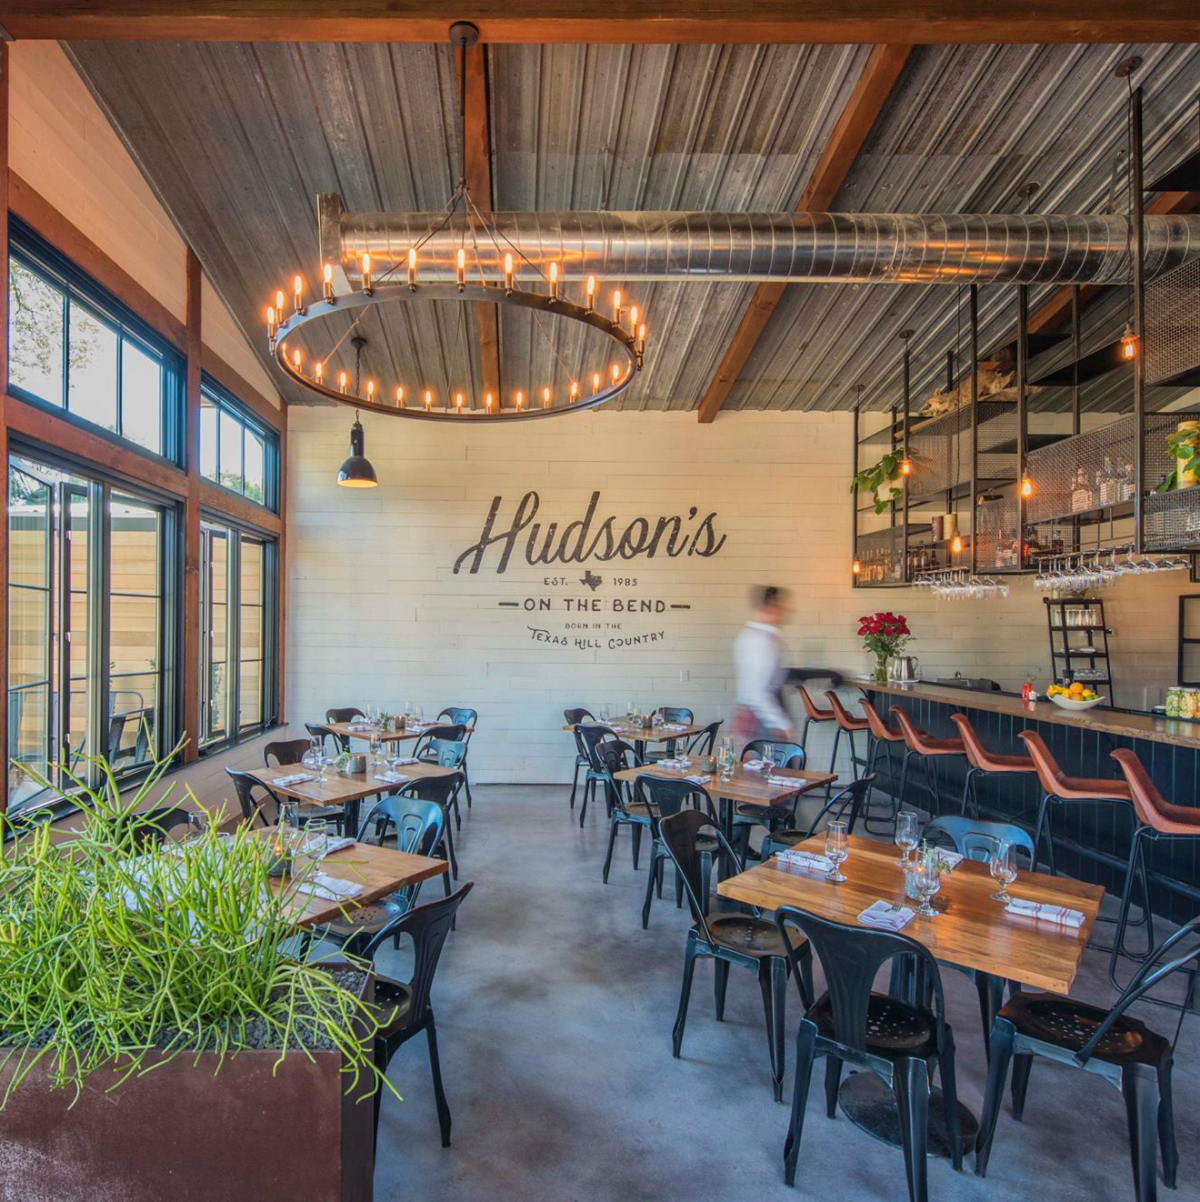 Hudsons on the Bend interior